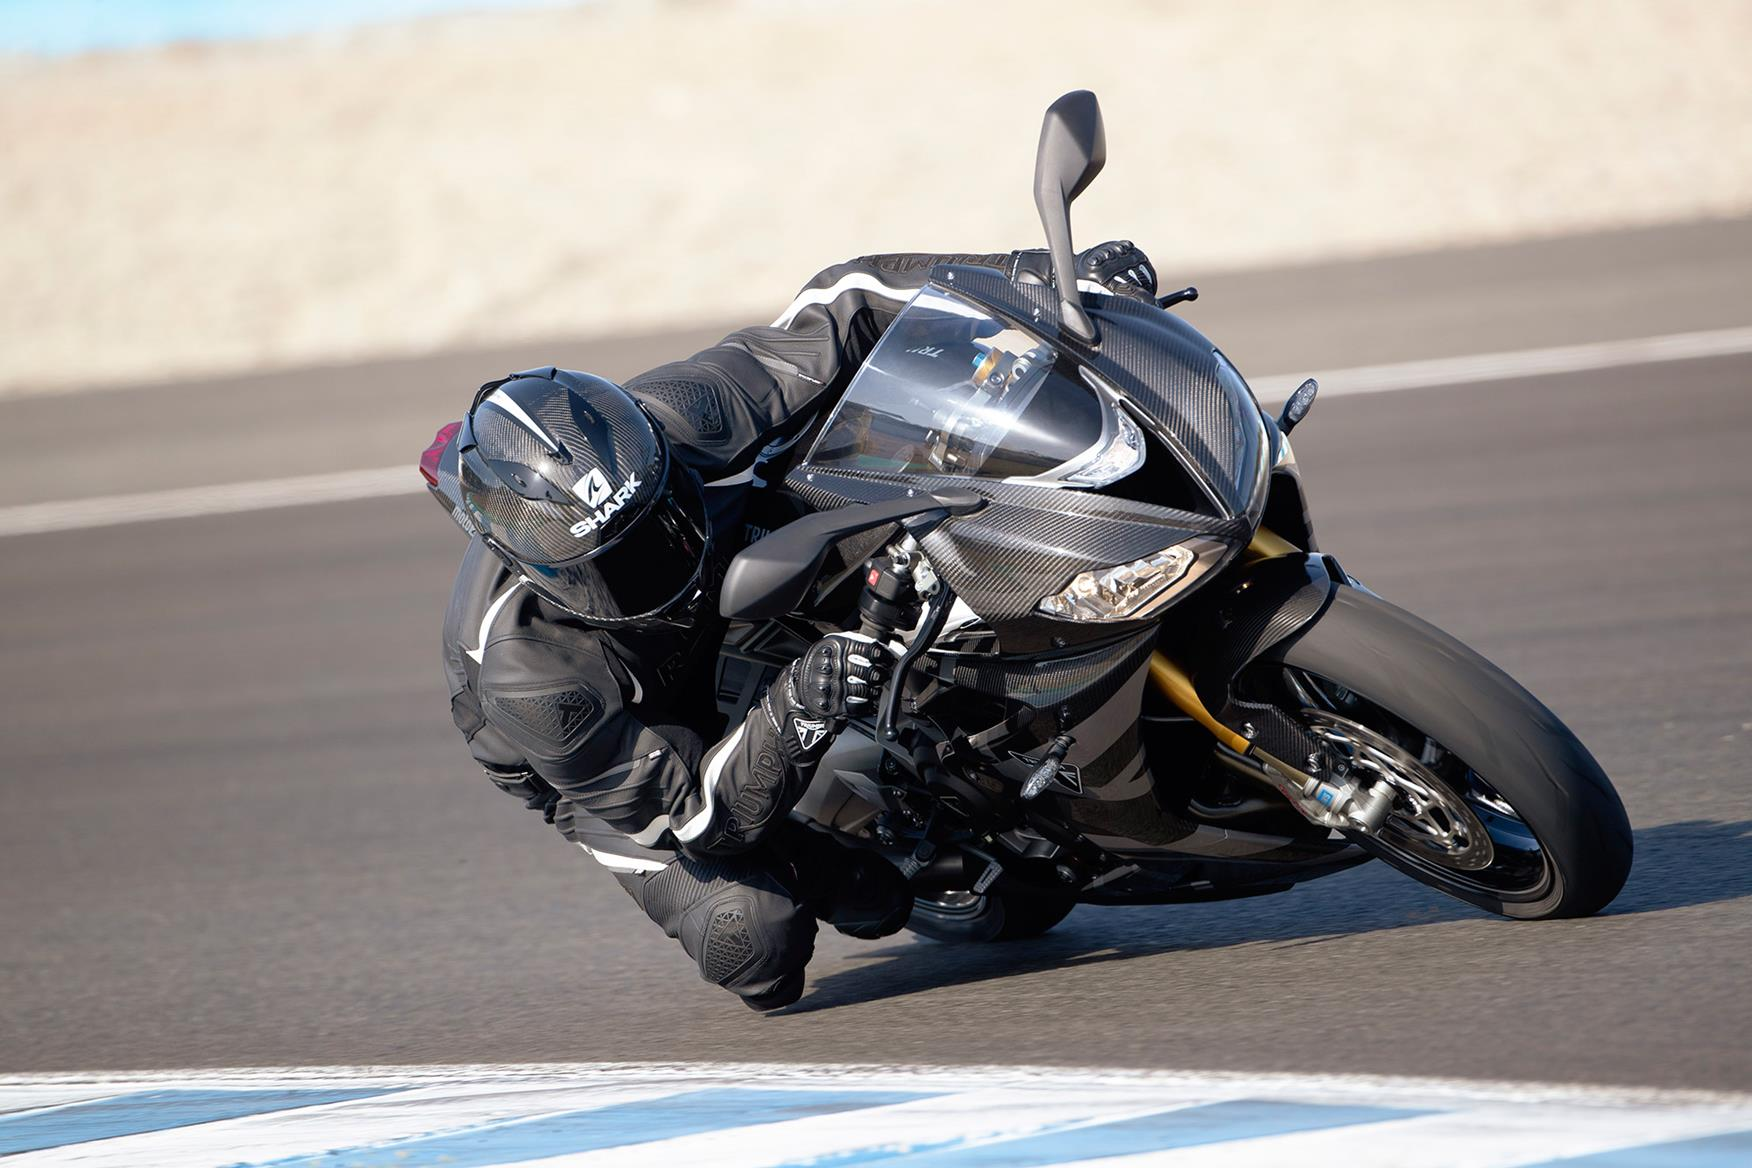 Triumph Daytona Moto2 765 Limited Edition first official pictures